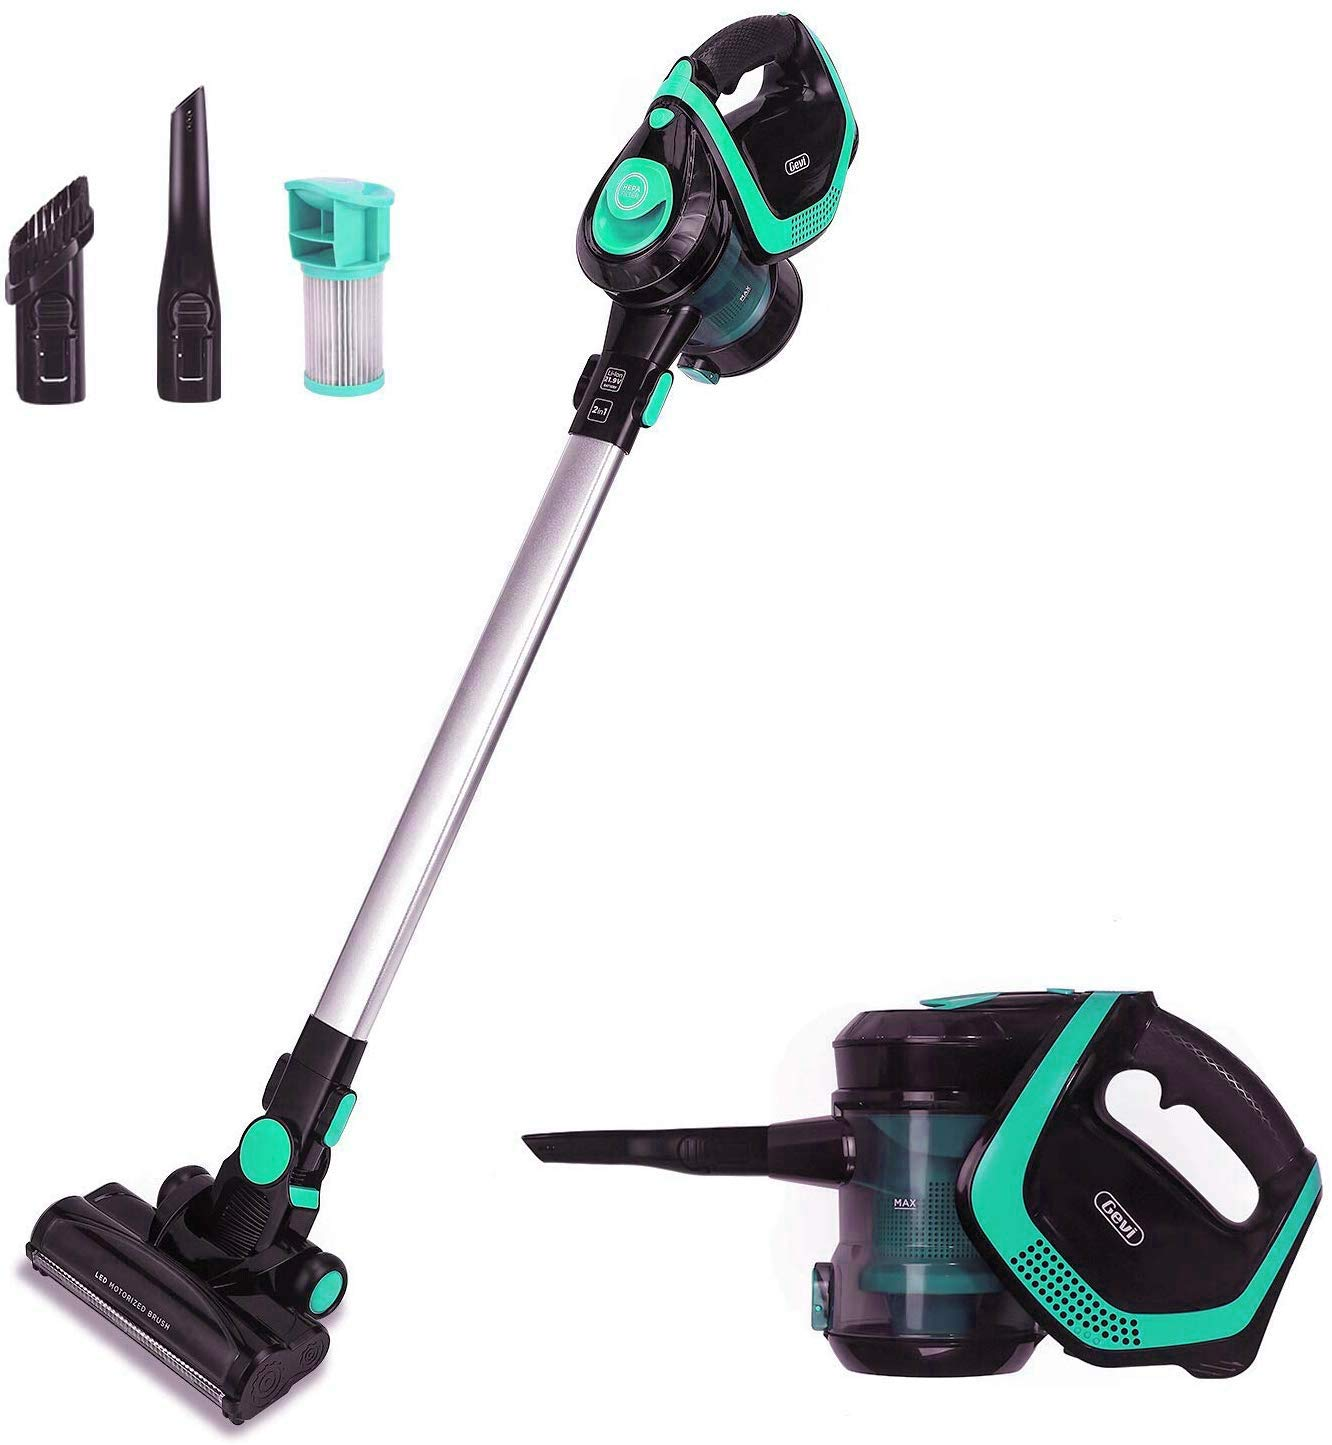 2 in 1 Upright Stick and Handhold Powerful Suction Vacuum Cleaner with Cordless Design and HEPA Filter, Lightweight and Rechargeable Wall Mounted Design Green Geen-Black